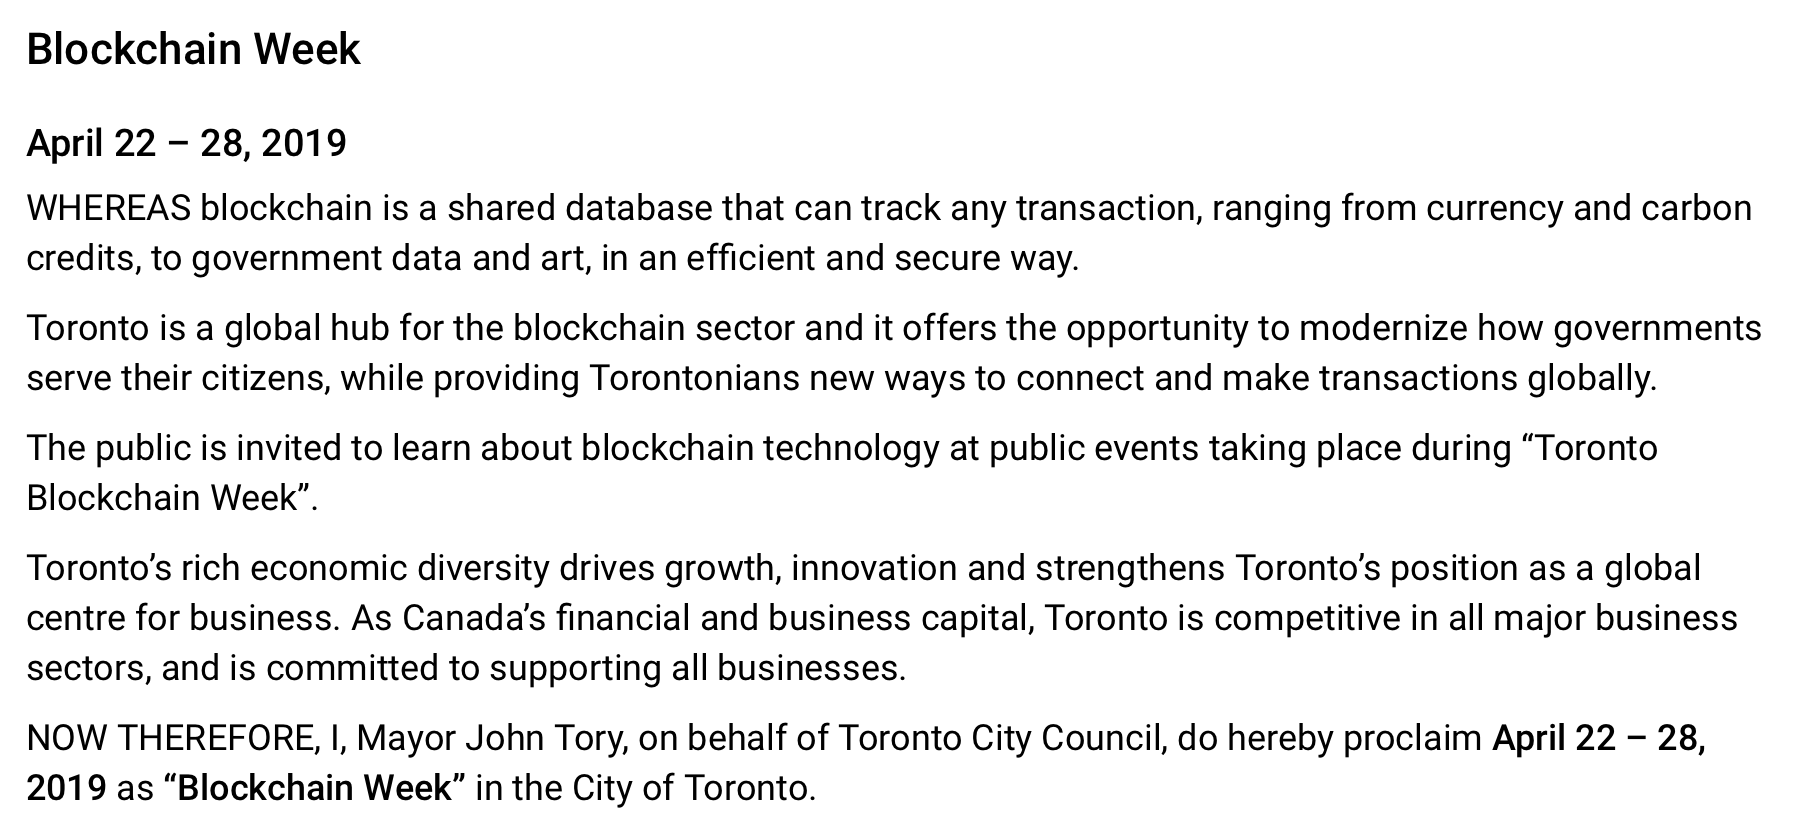 Official proclamation of Toronto Blockchain Week